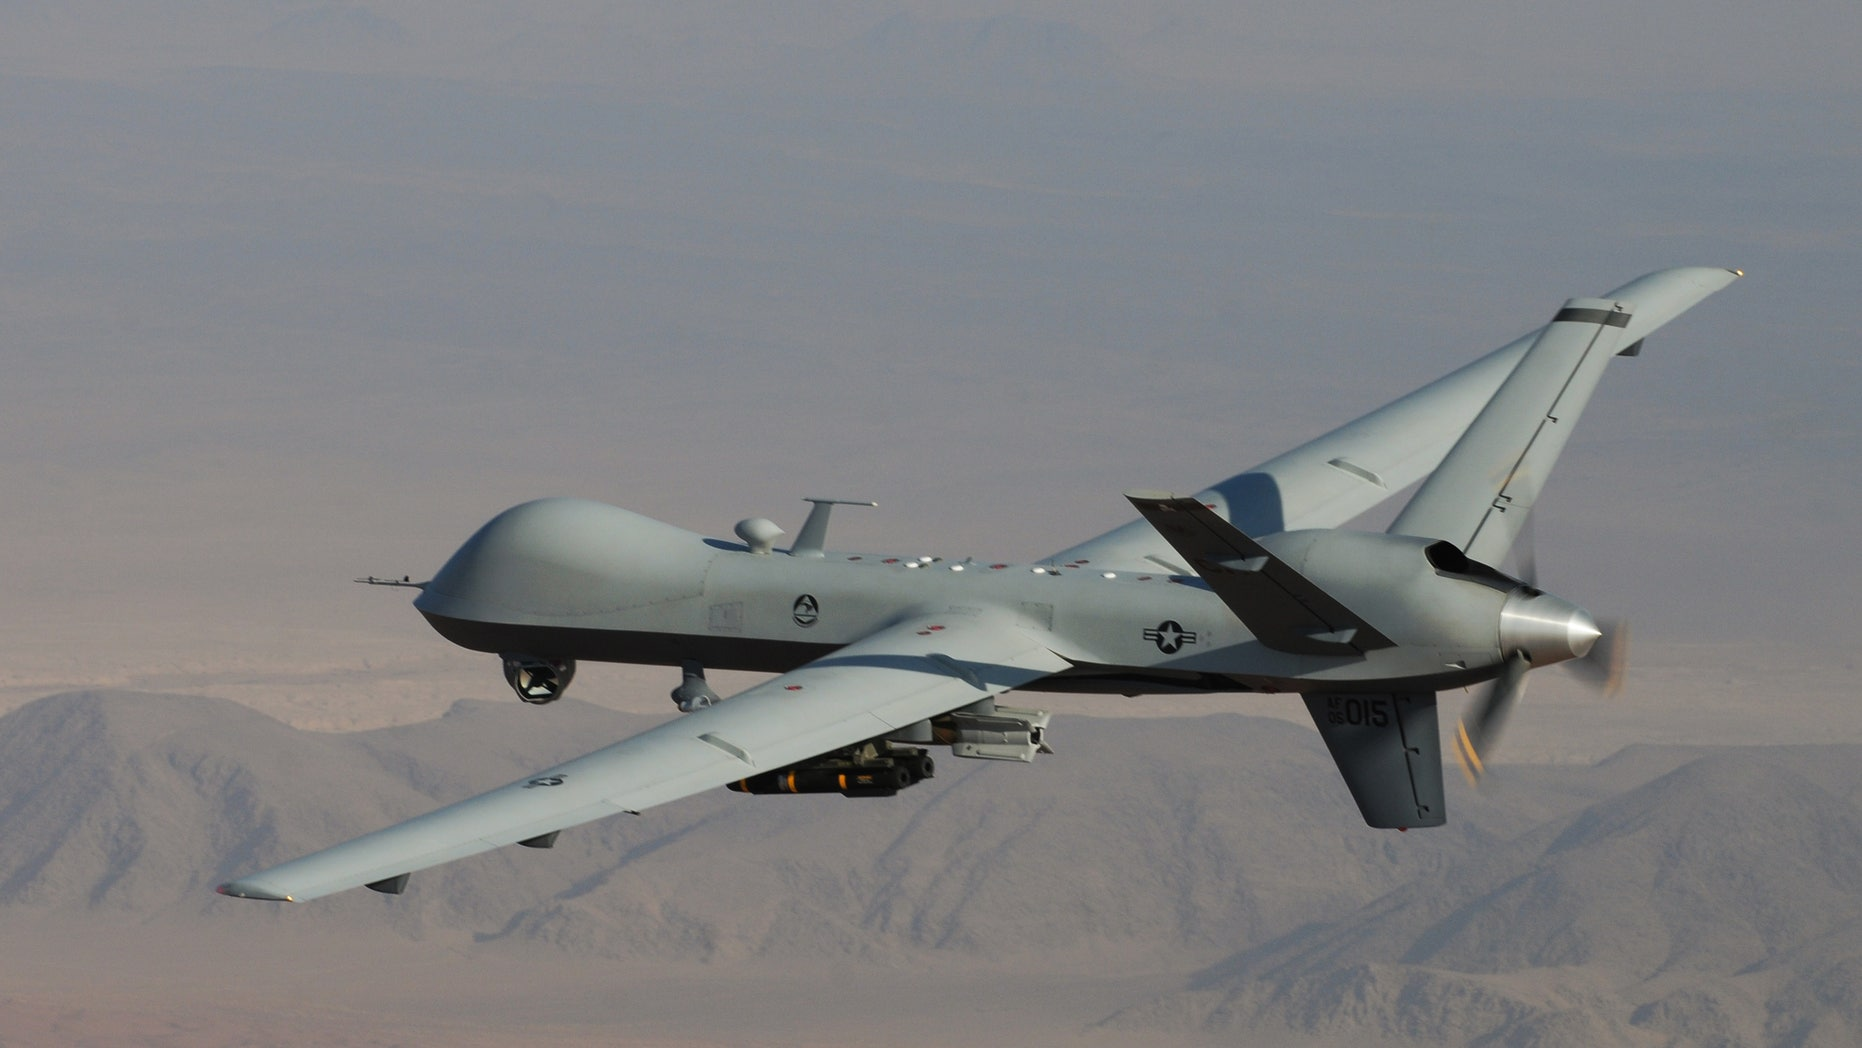 In this undated handout file photo provided by the U.S. Air Force, an MQ-9 Reaper, armed with GBU-12 Paveway II laser guided munitions and AGM-114 Hellfire missiles, is piloted by Col. Lex Turner during a combat mission over southern Afghanistan.